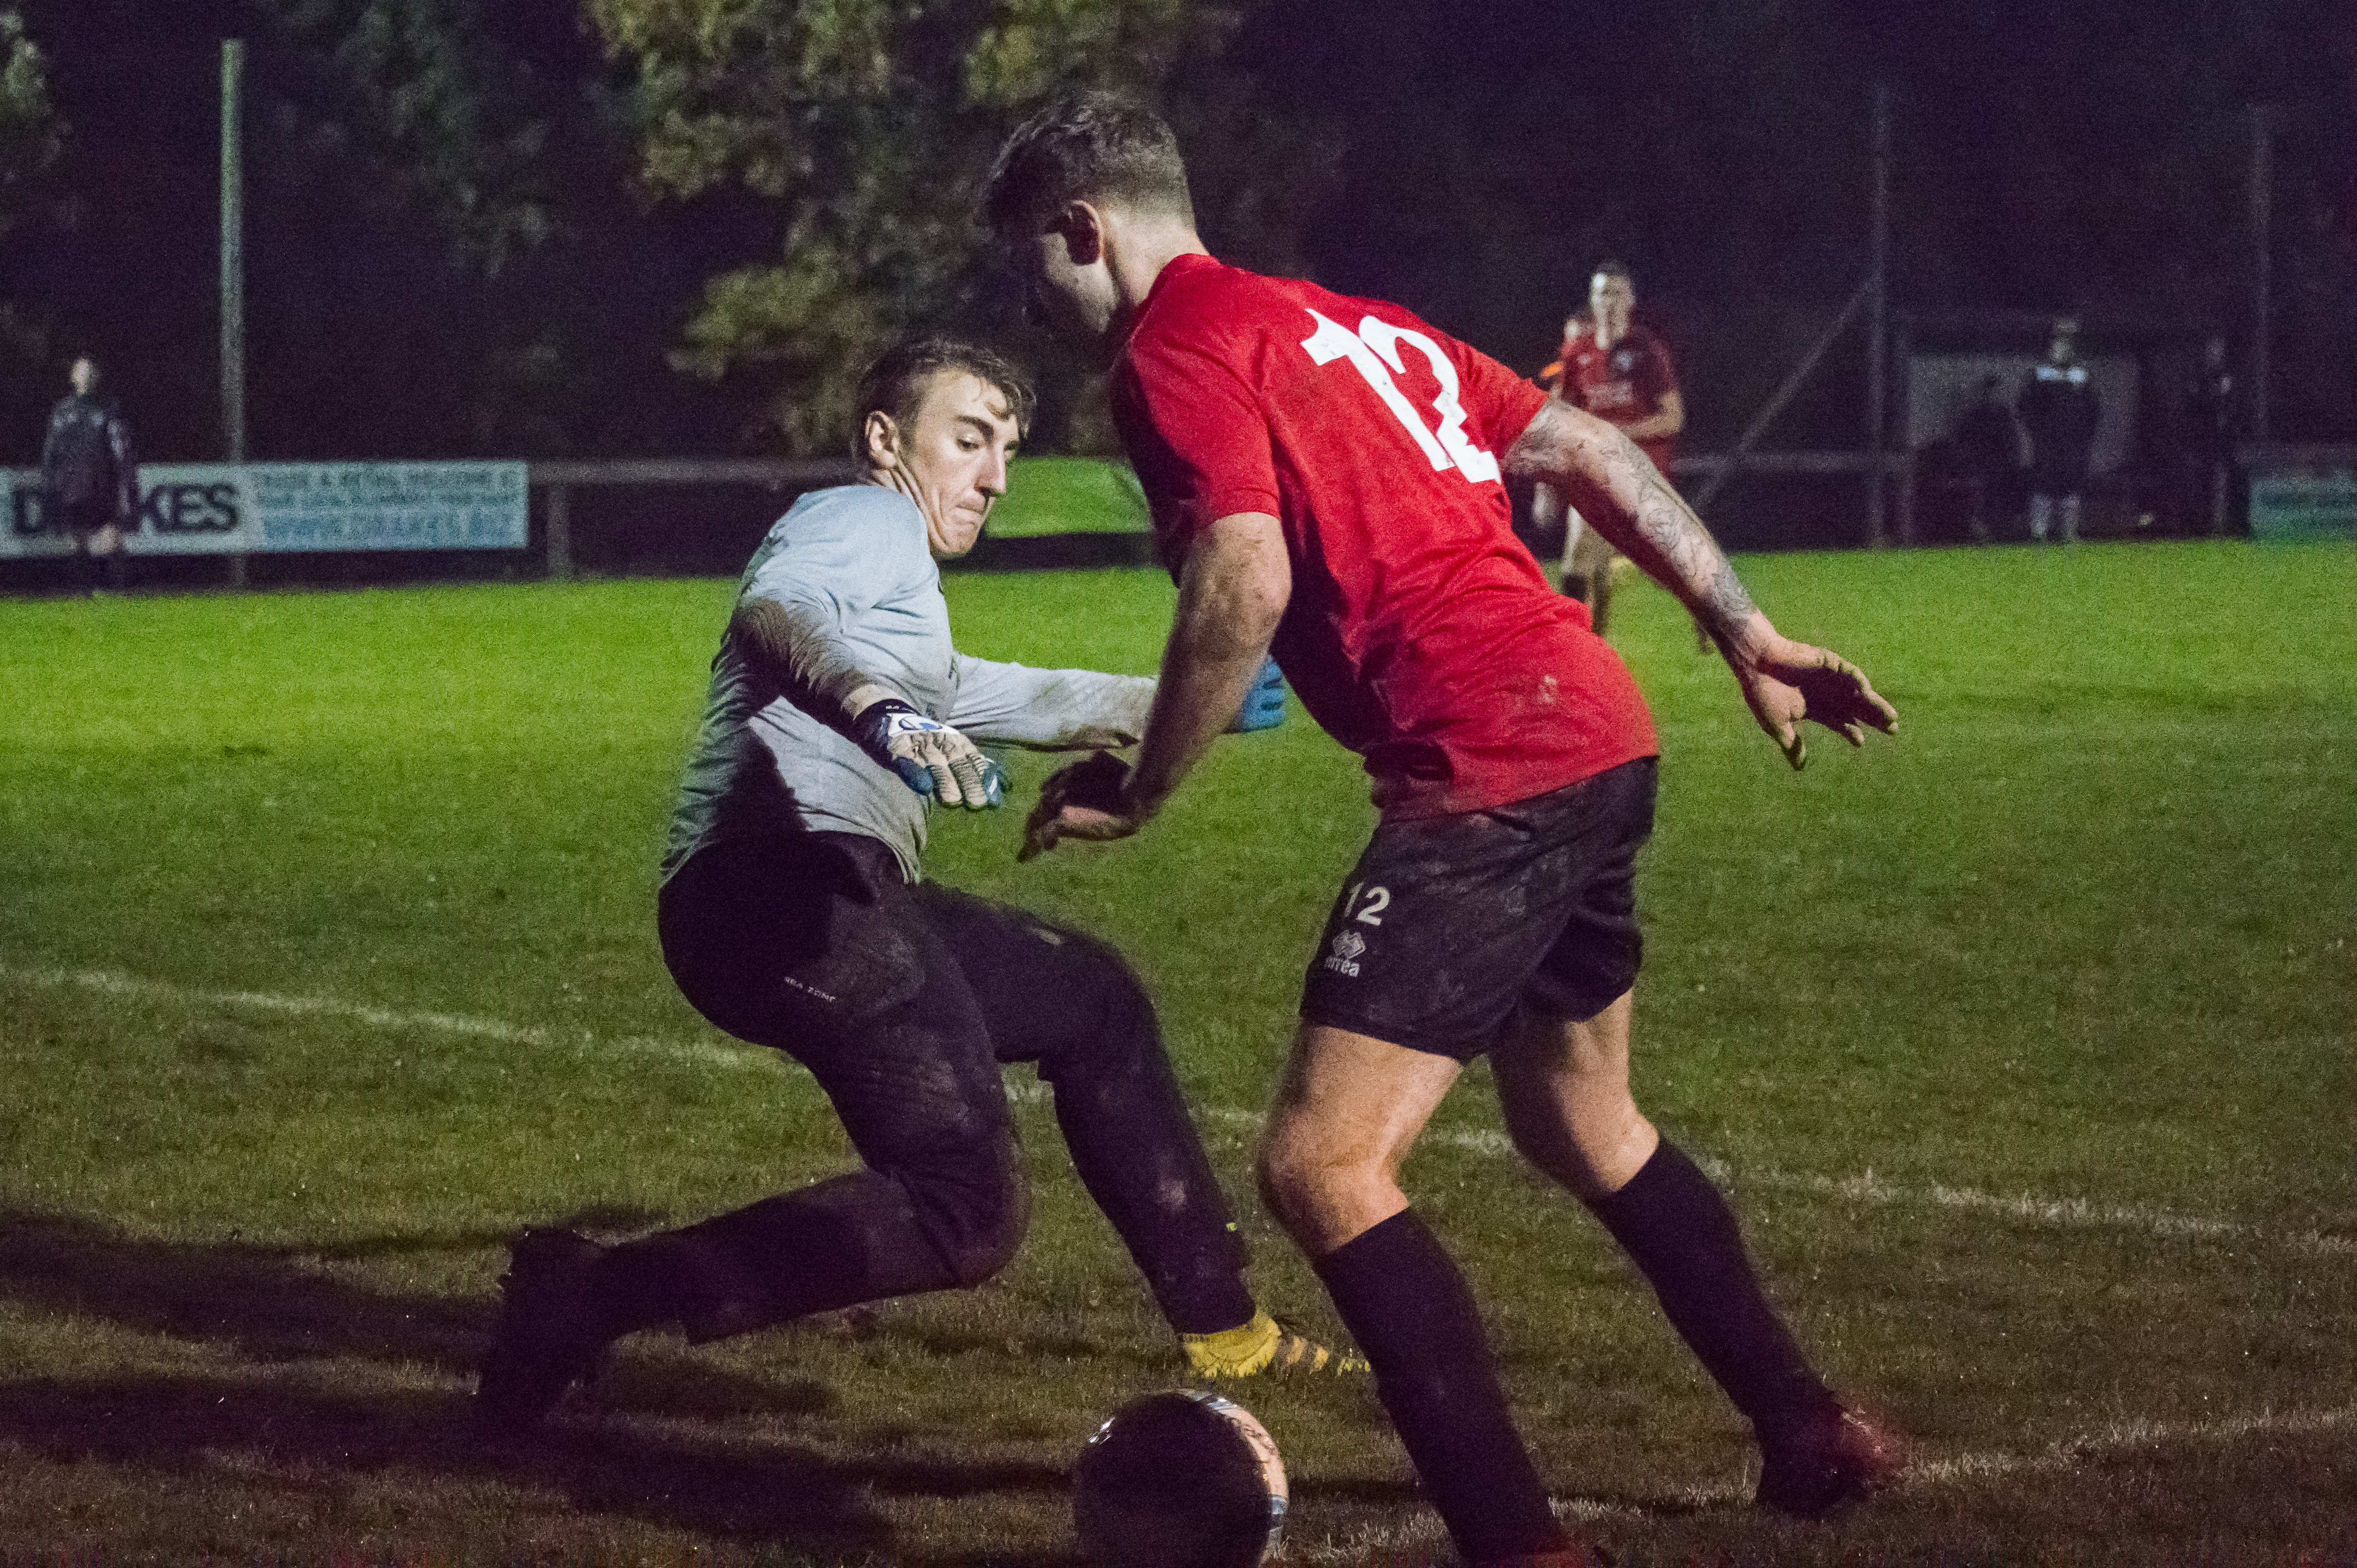 Mile Oak U21s vs Uckfield U21s 02.11.17 11